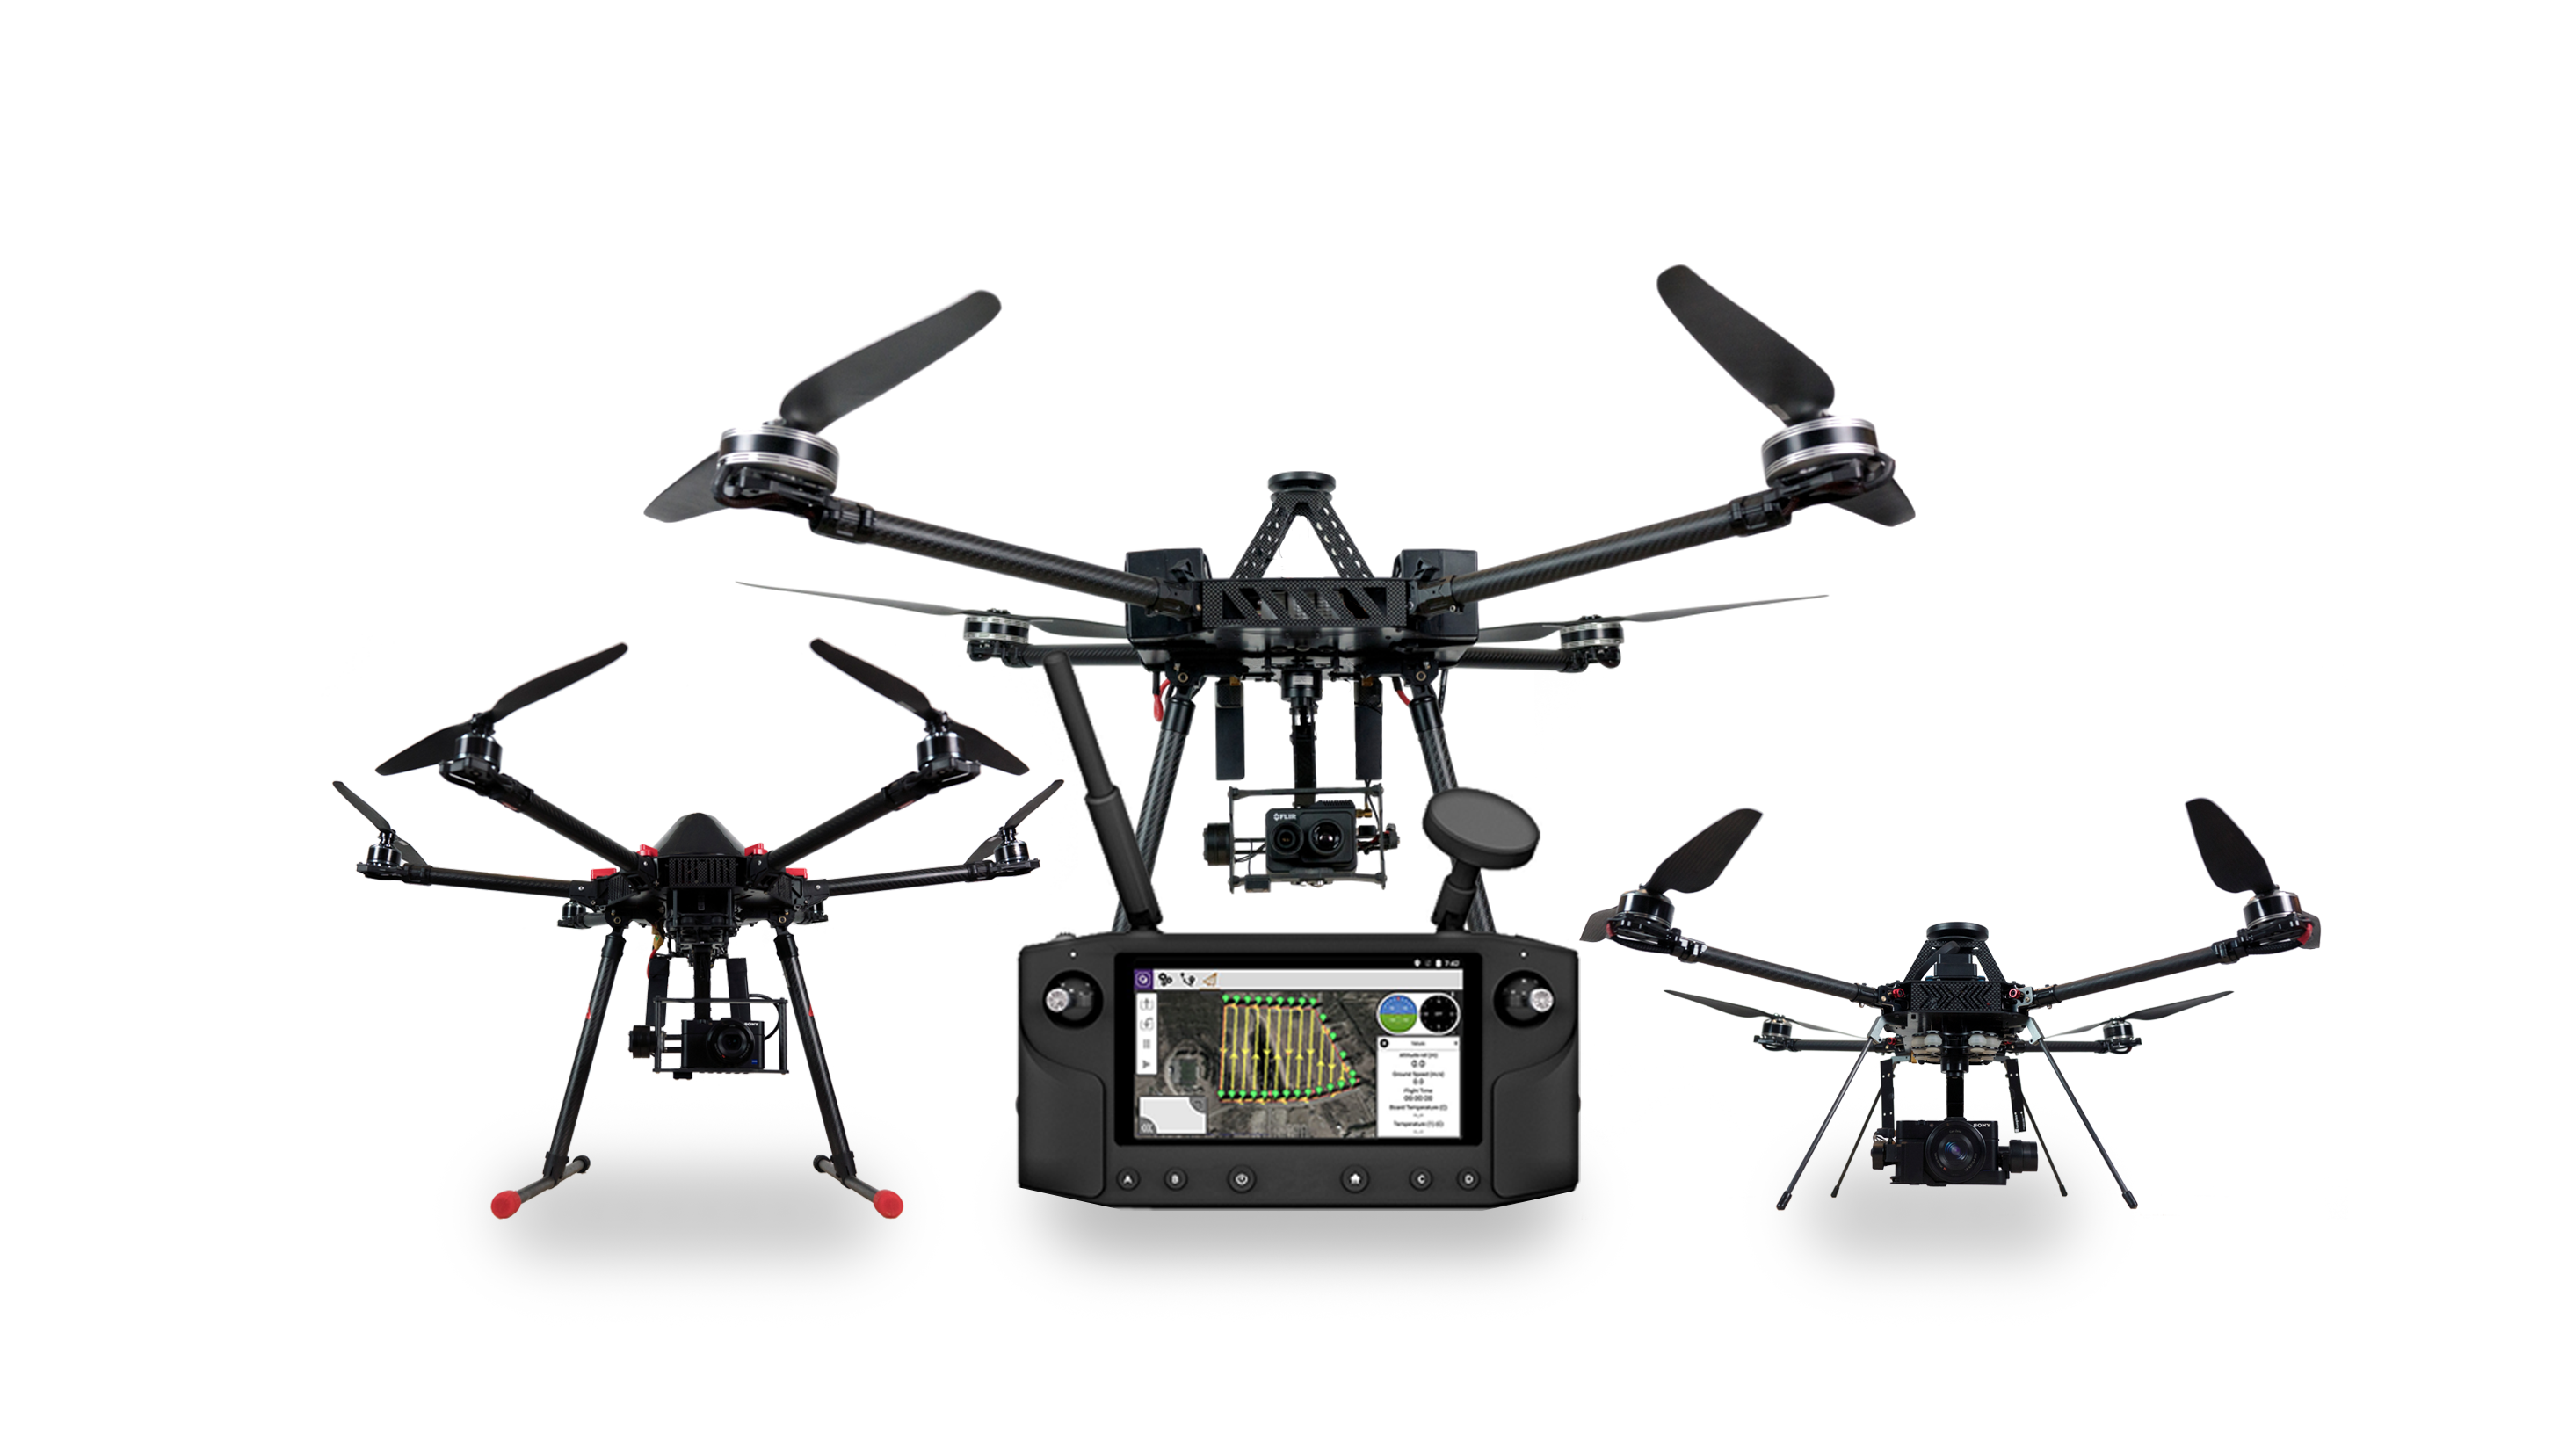 https://www.dronezone.ro/wp-content/uploads/2020/08/header2.png